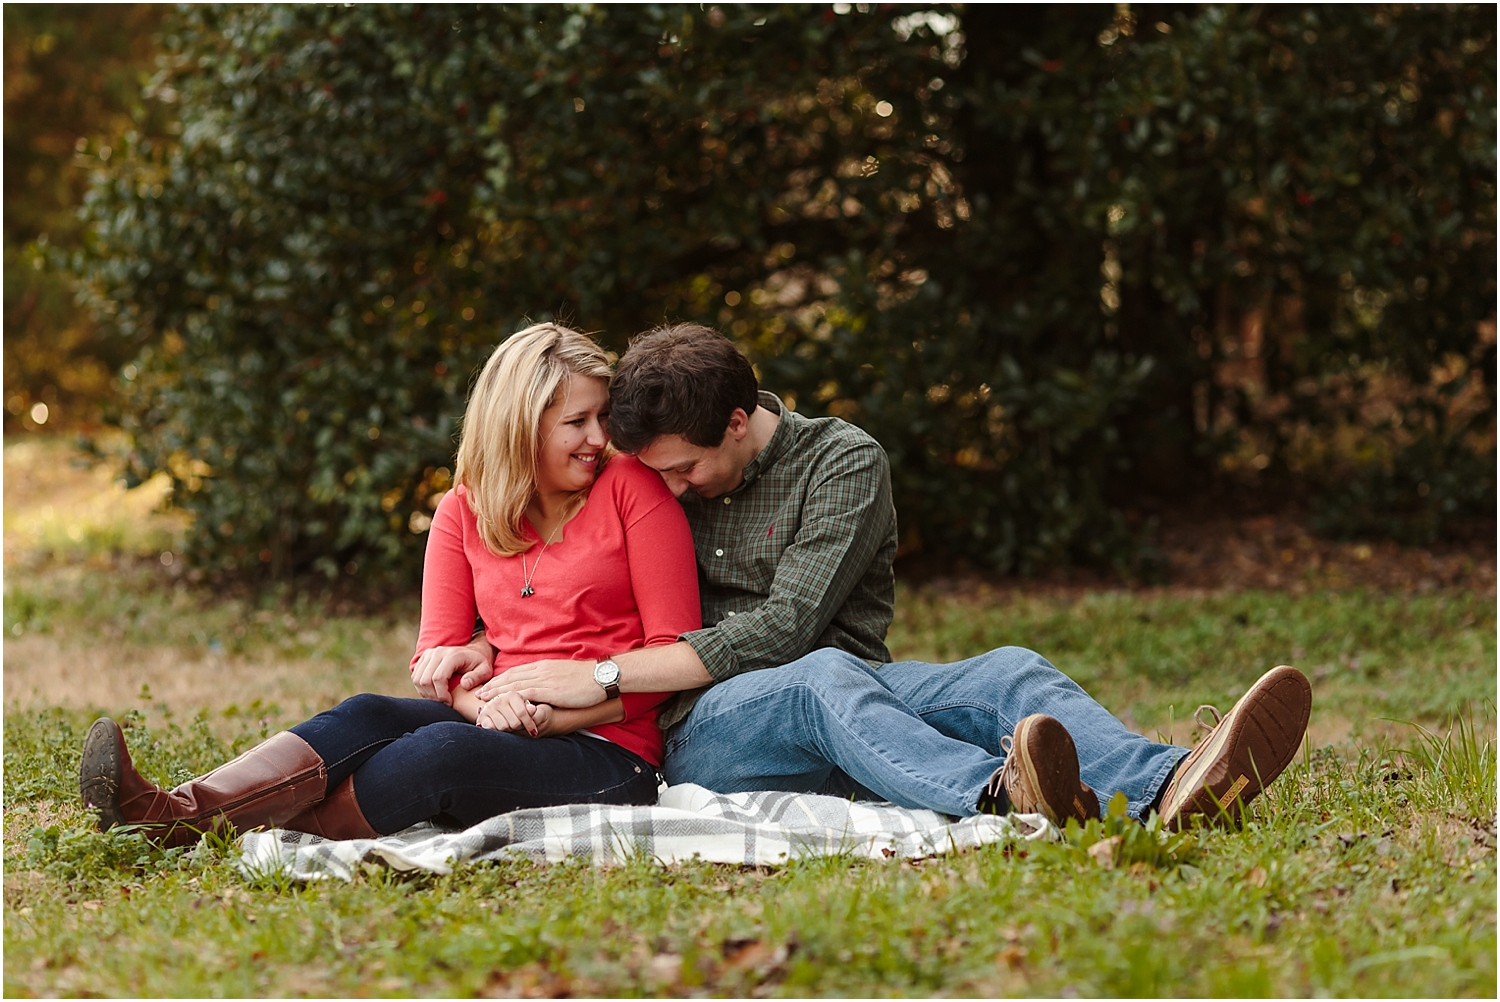 141207--9656clemson-engagement-shoot_blog.jpg